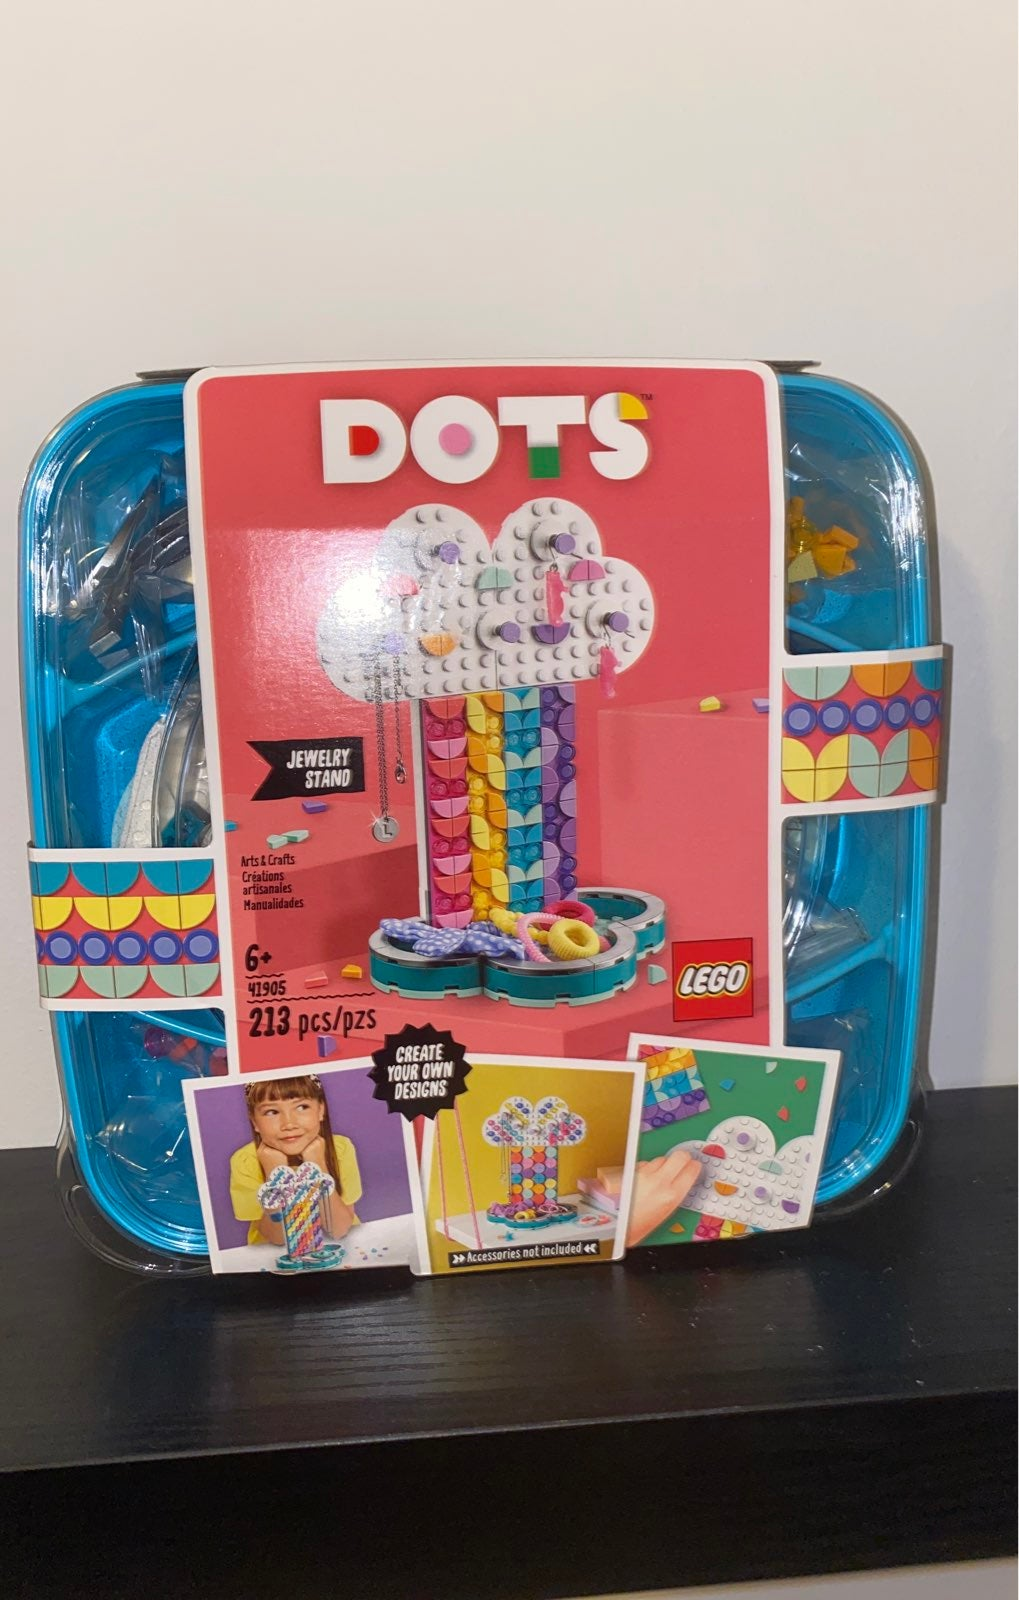 LEGO DOTS Rainbow Jewelry Stand Cool DIY